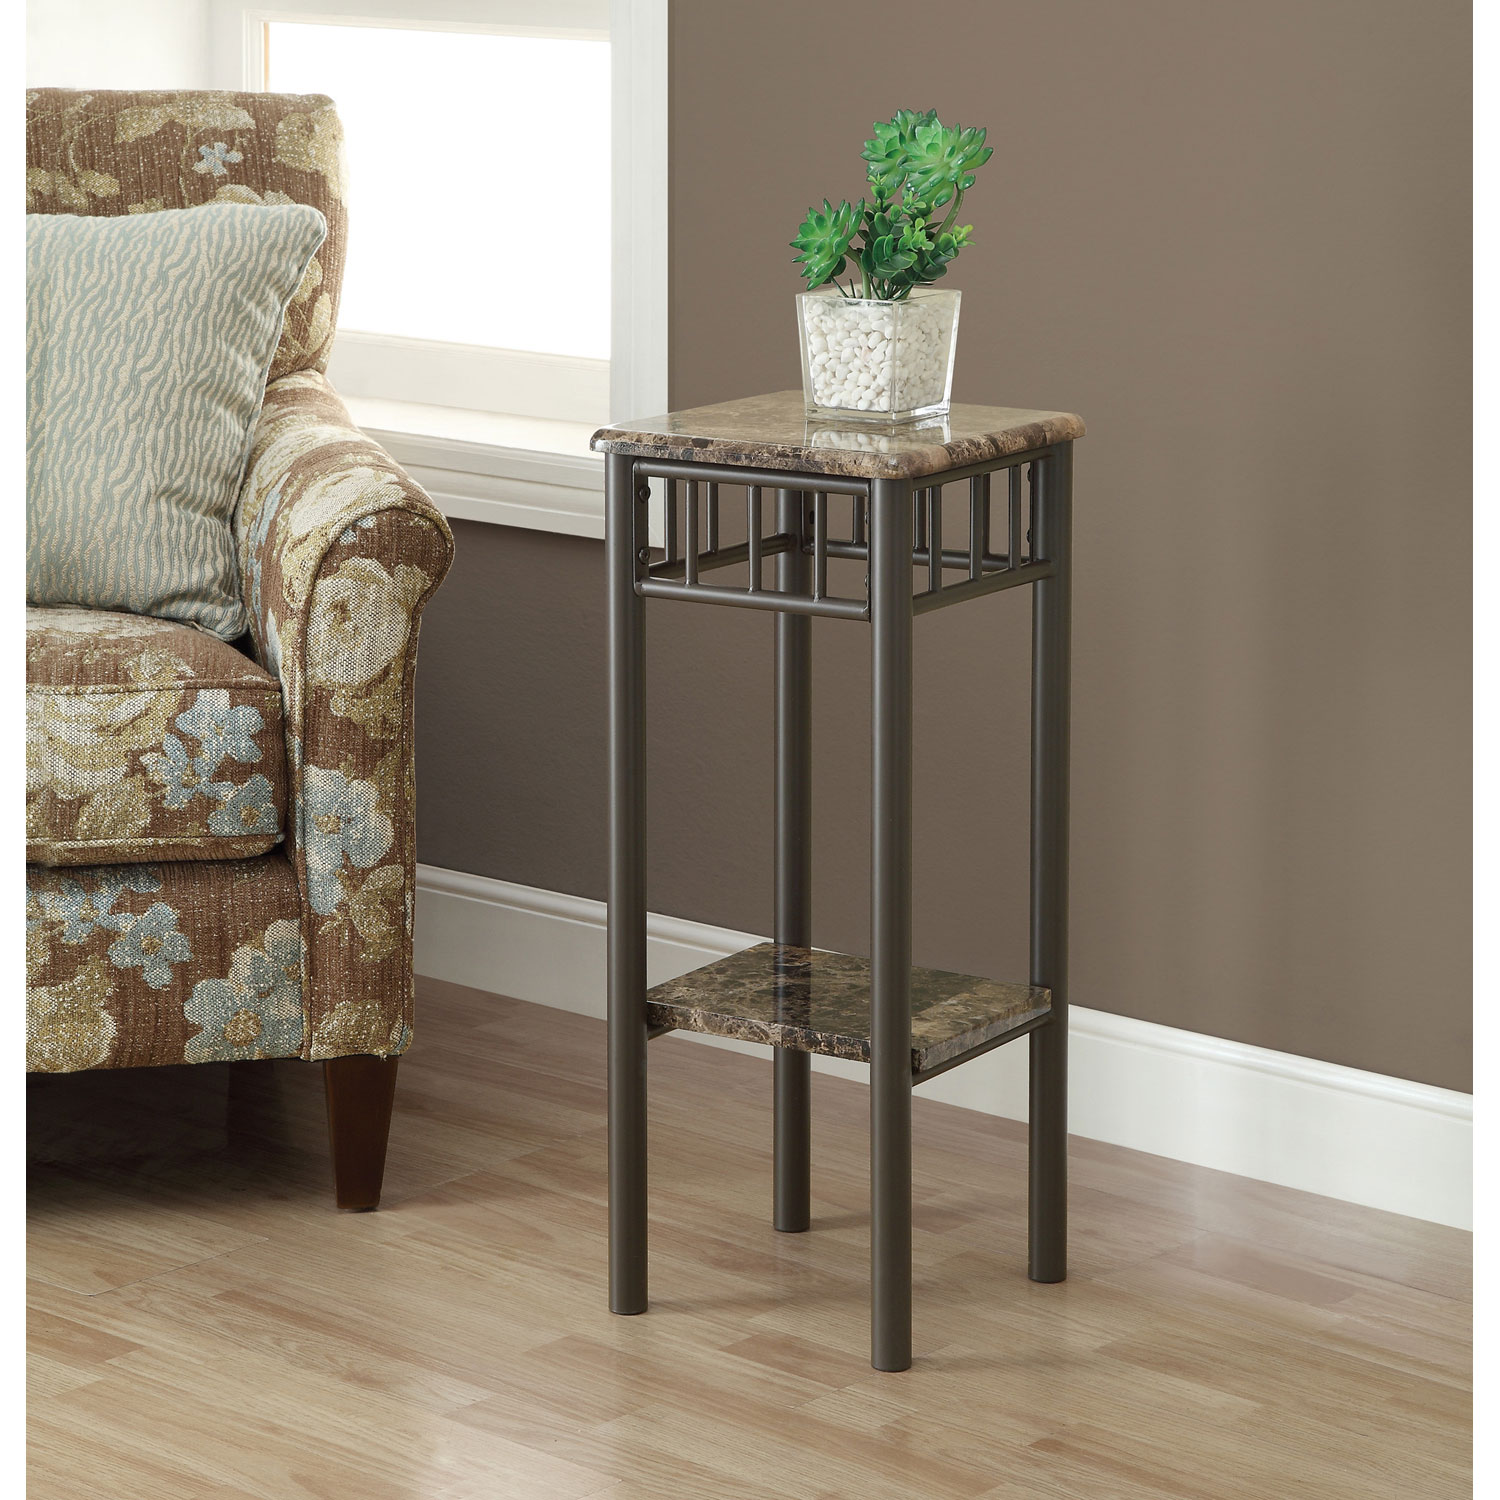 hawthorne ave accent table cappuccino marble bronze metal glass top hover zoom nautical kitchen corner furniture high bistro kirklands tables tiffany mission style lamps modern